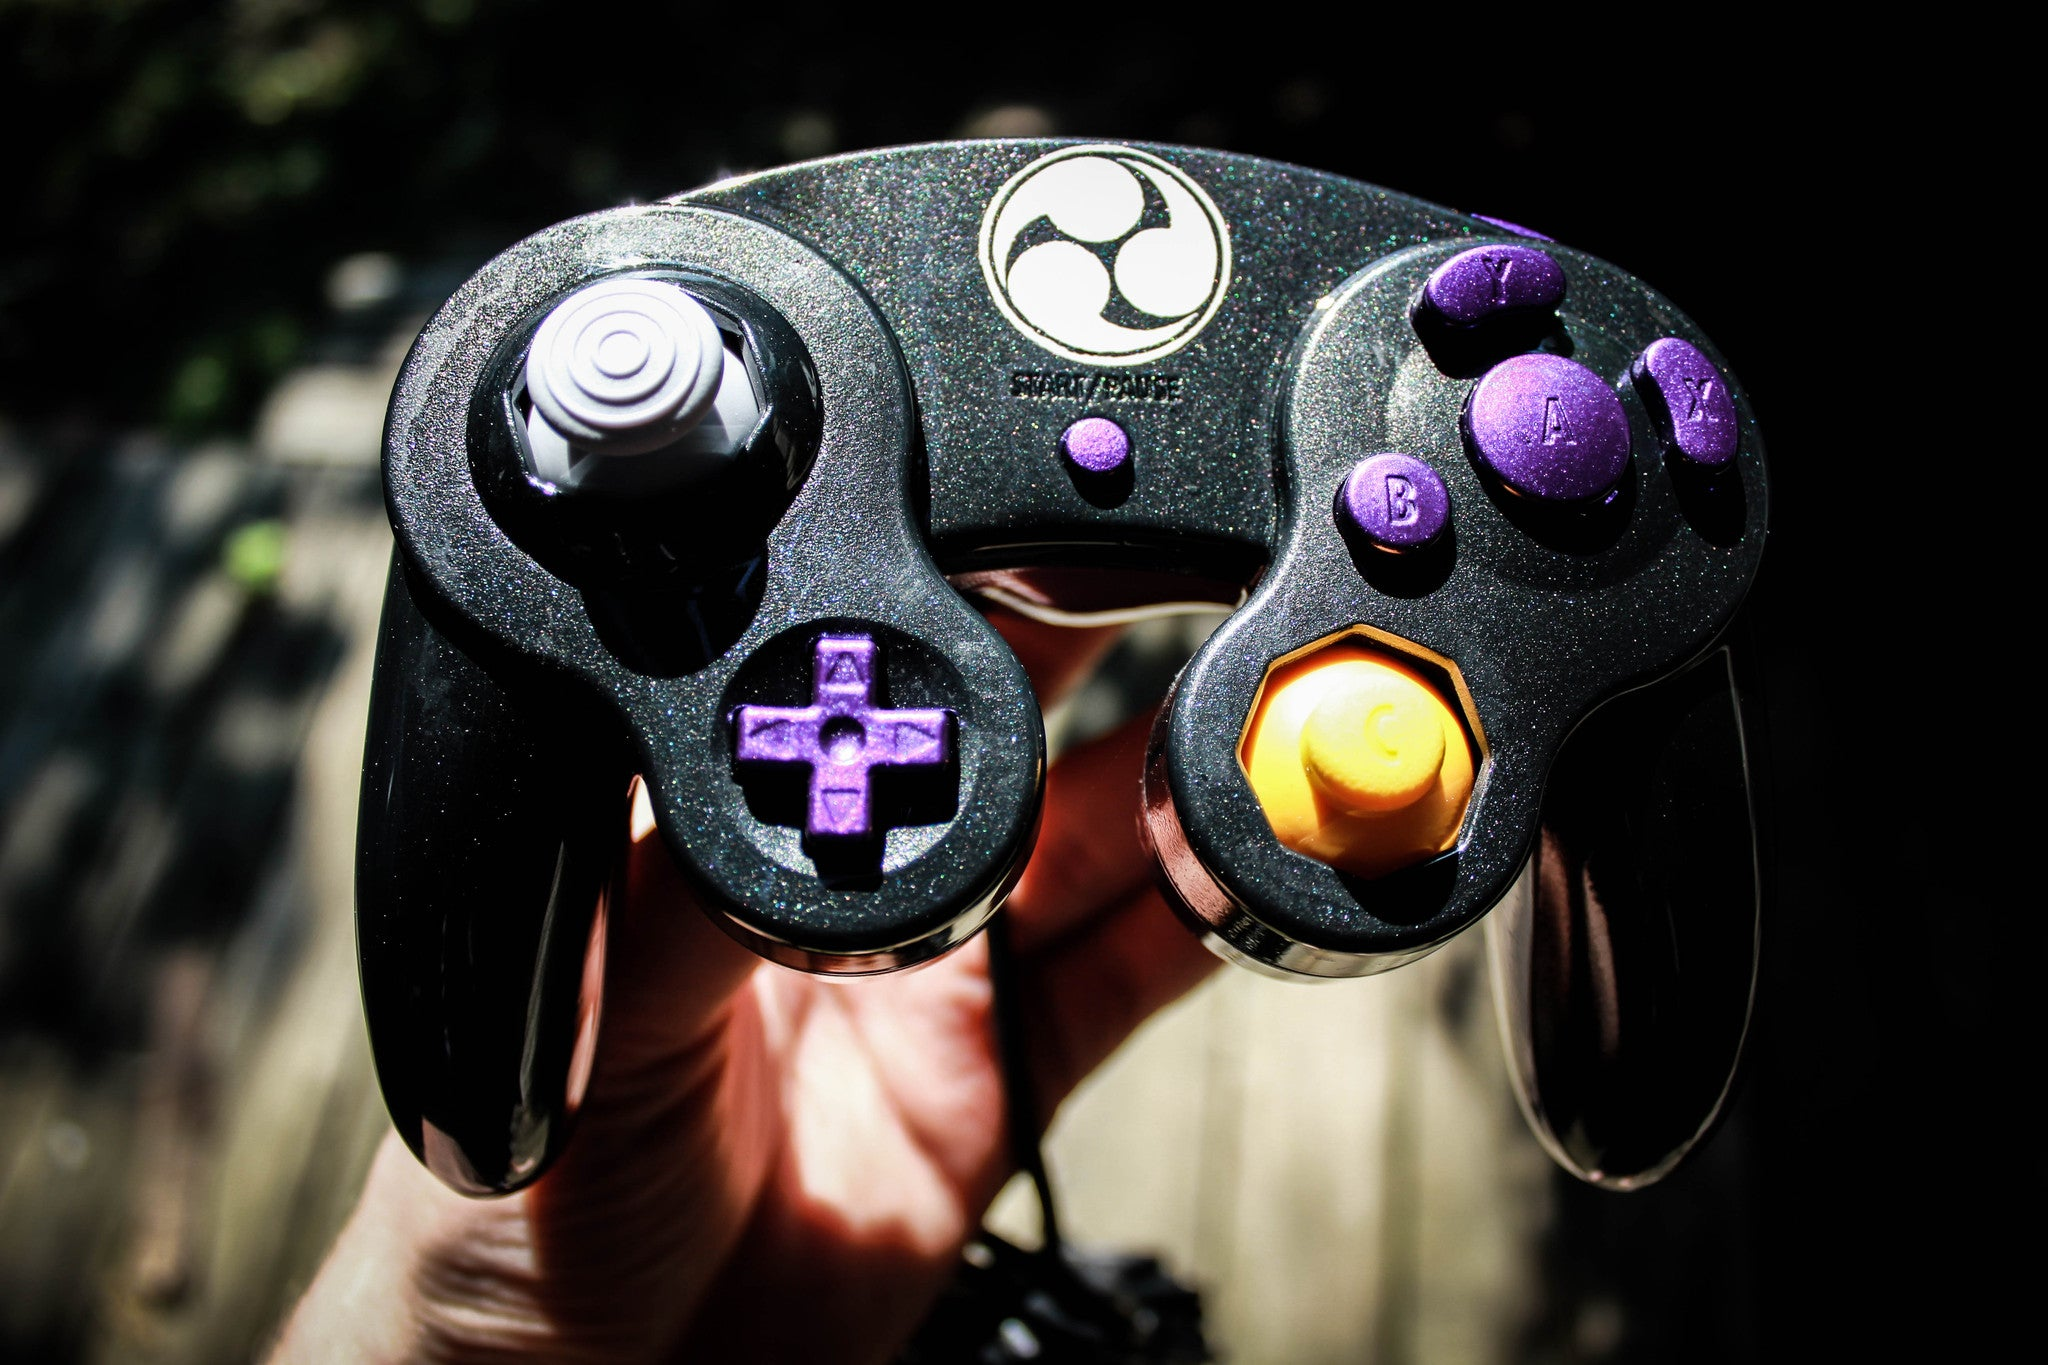 Custom Nintendo Super Smash Bros. Classic Gamecube Controller for Wii U